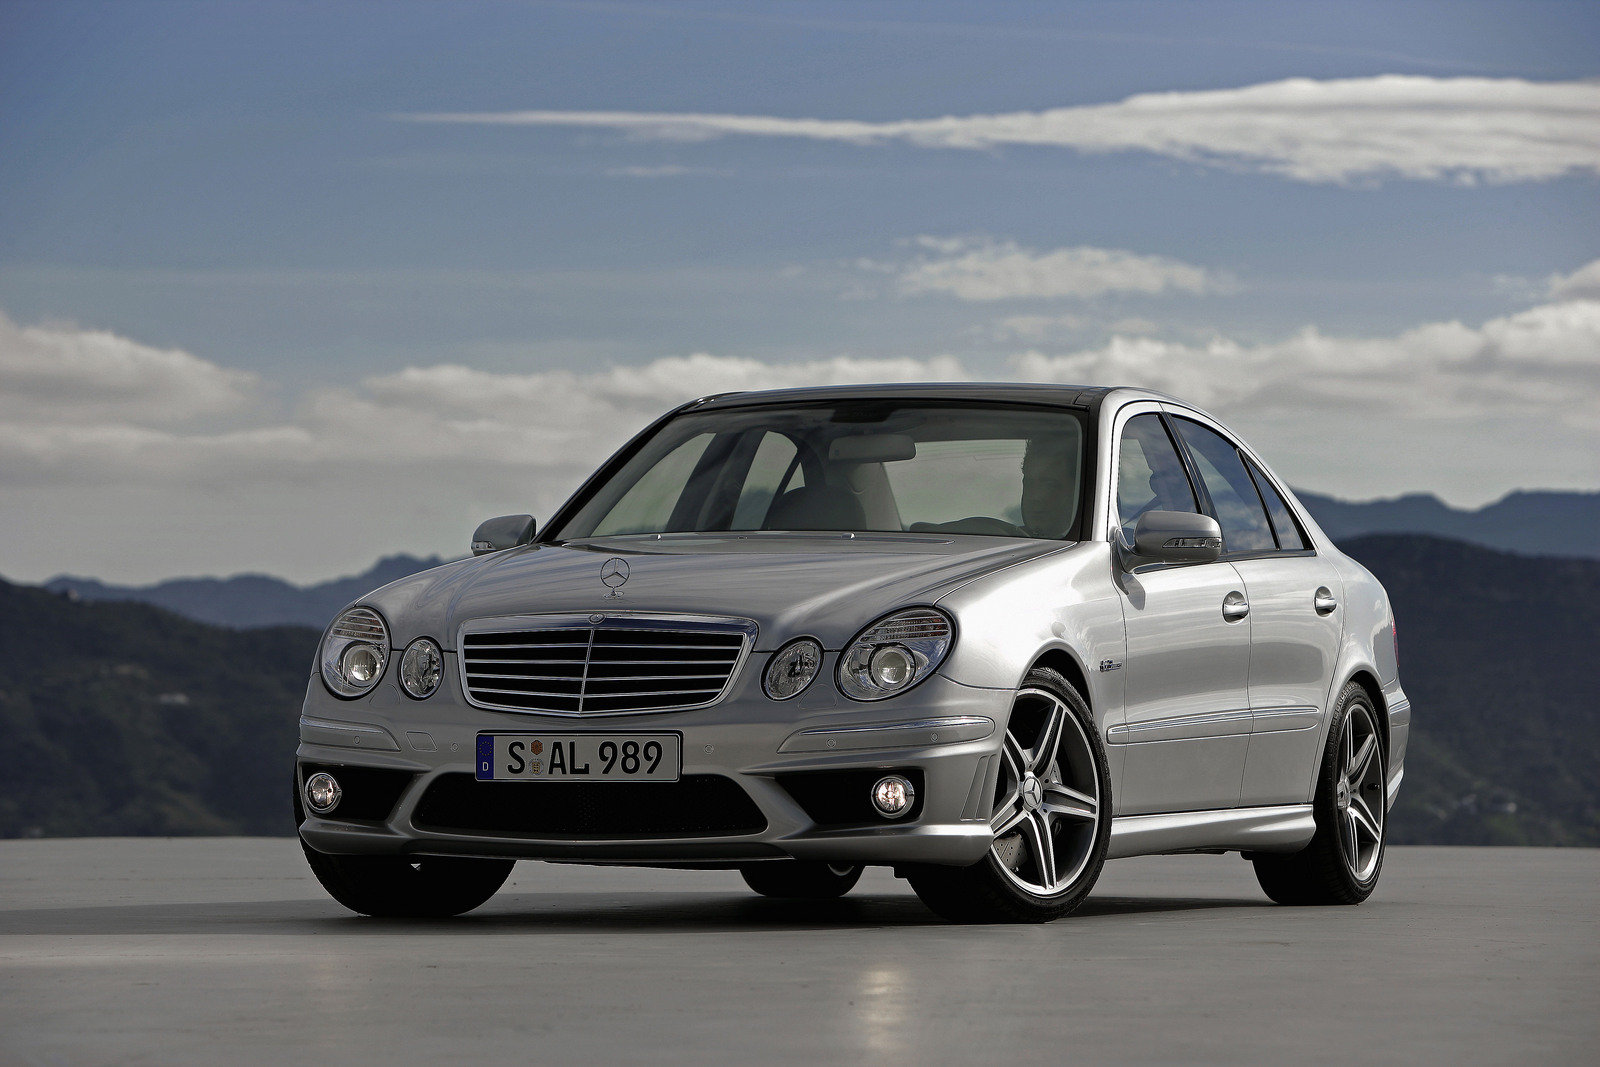 2007 mercedes benz e63 amg picture 52447 car review top speed. Black Bedroom Furniture Sets. Home Design Ideas